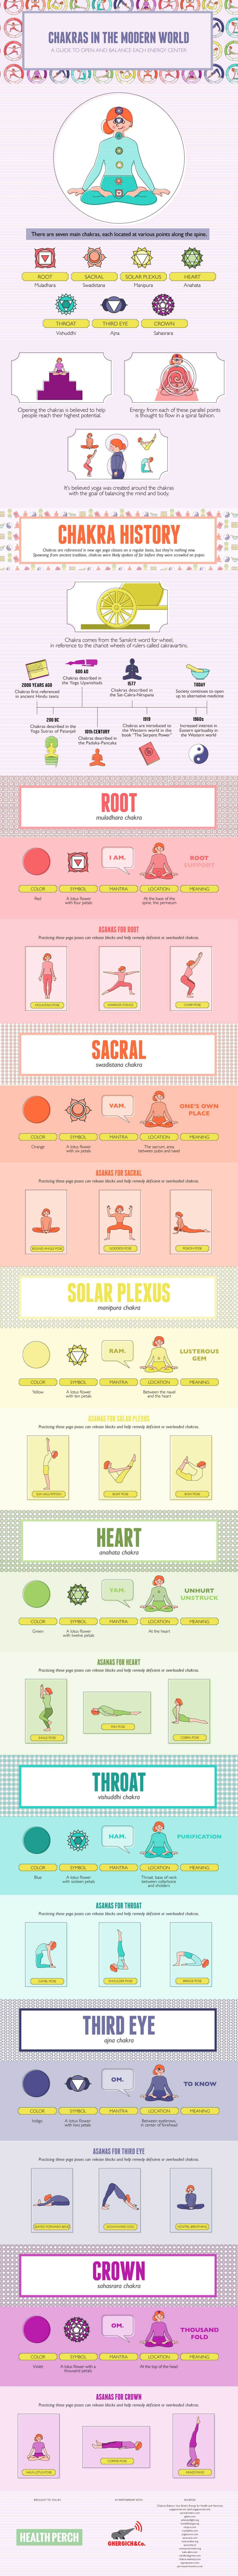 The Science of Chakras: Energizing and Balancing Body and Mind - Infographic